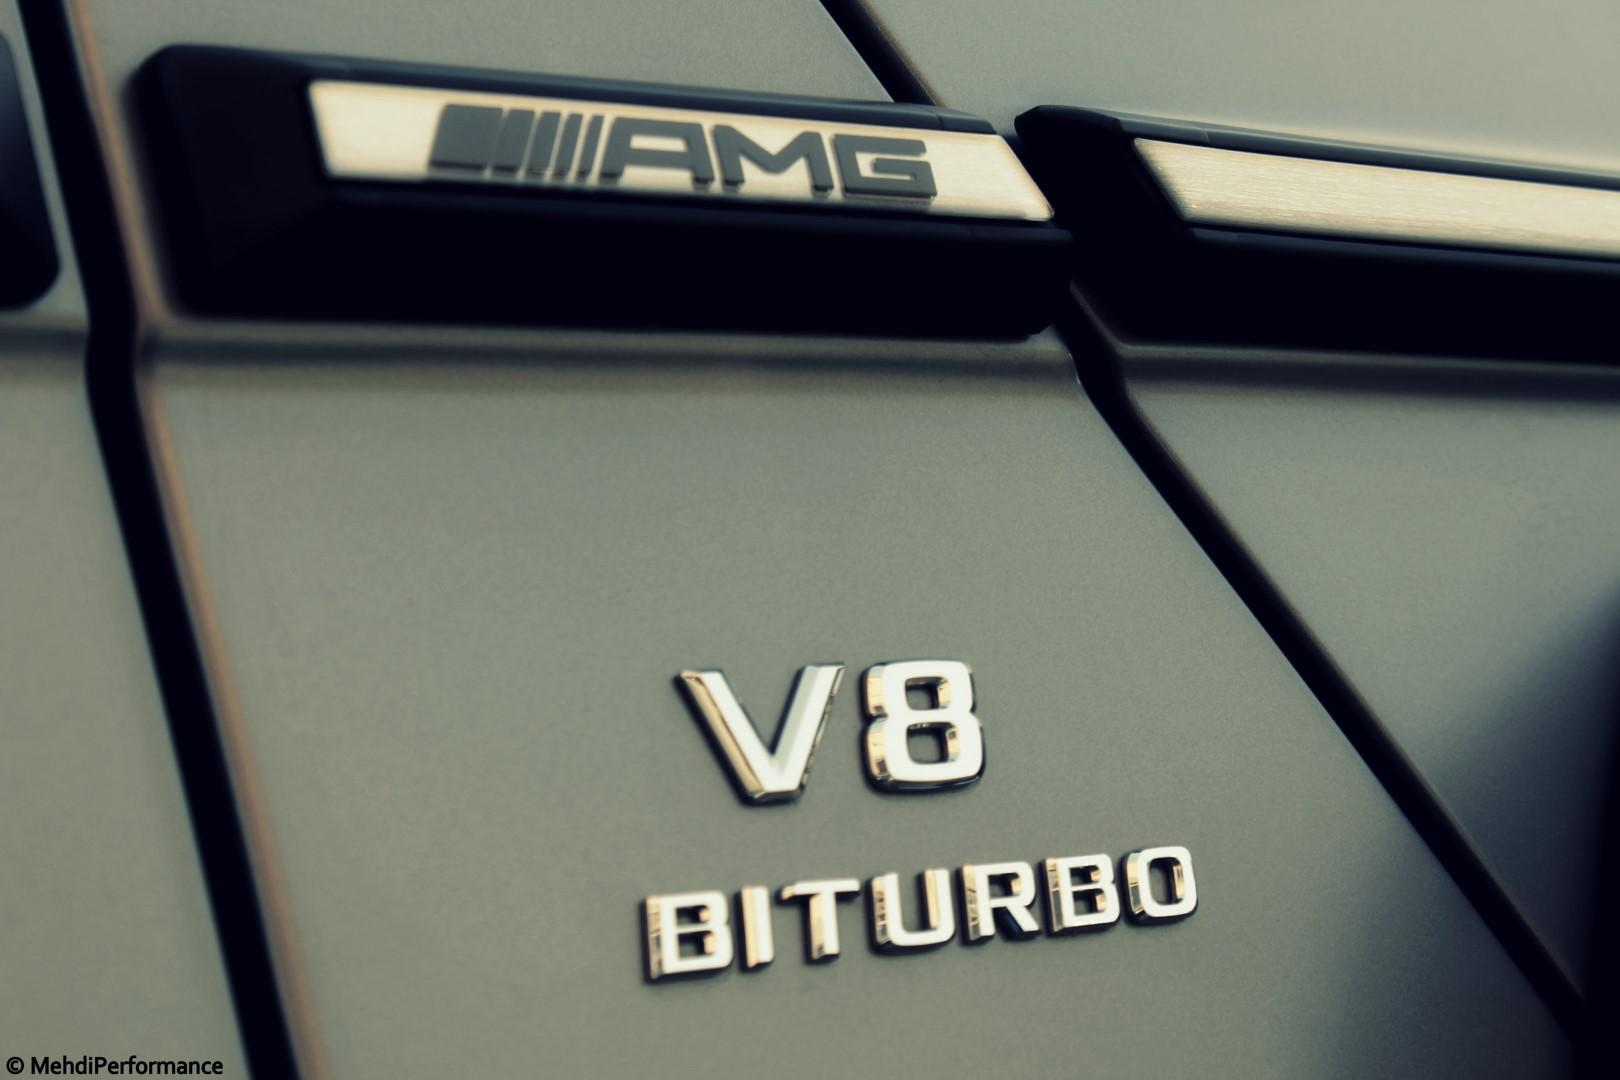 mercedes-amg-g63-un-4x4-de-conception-antique-catapulte-par-un-v8-biturbo-de-plus-de-500-ch-314-7.jpg